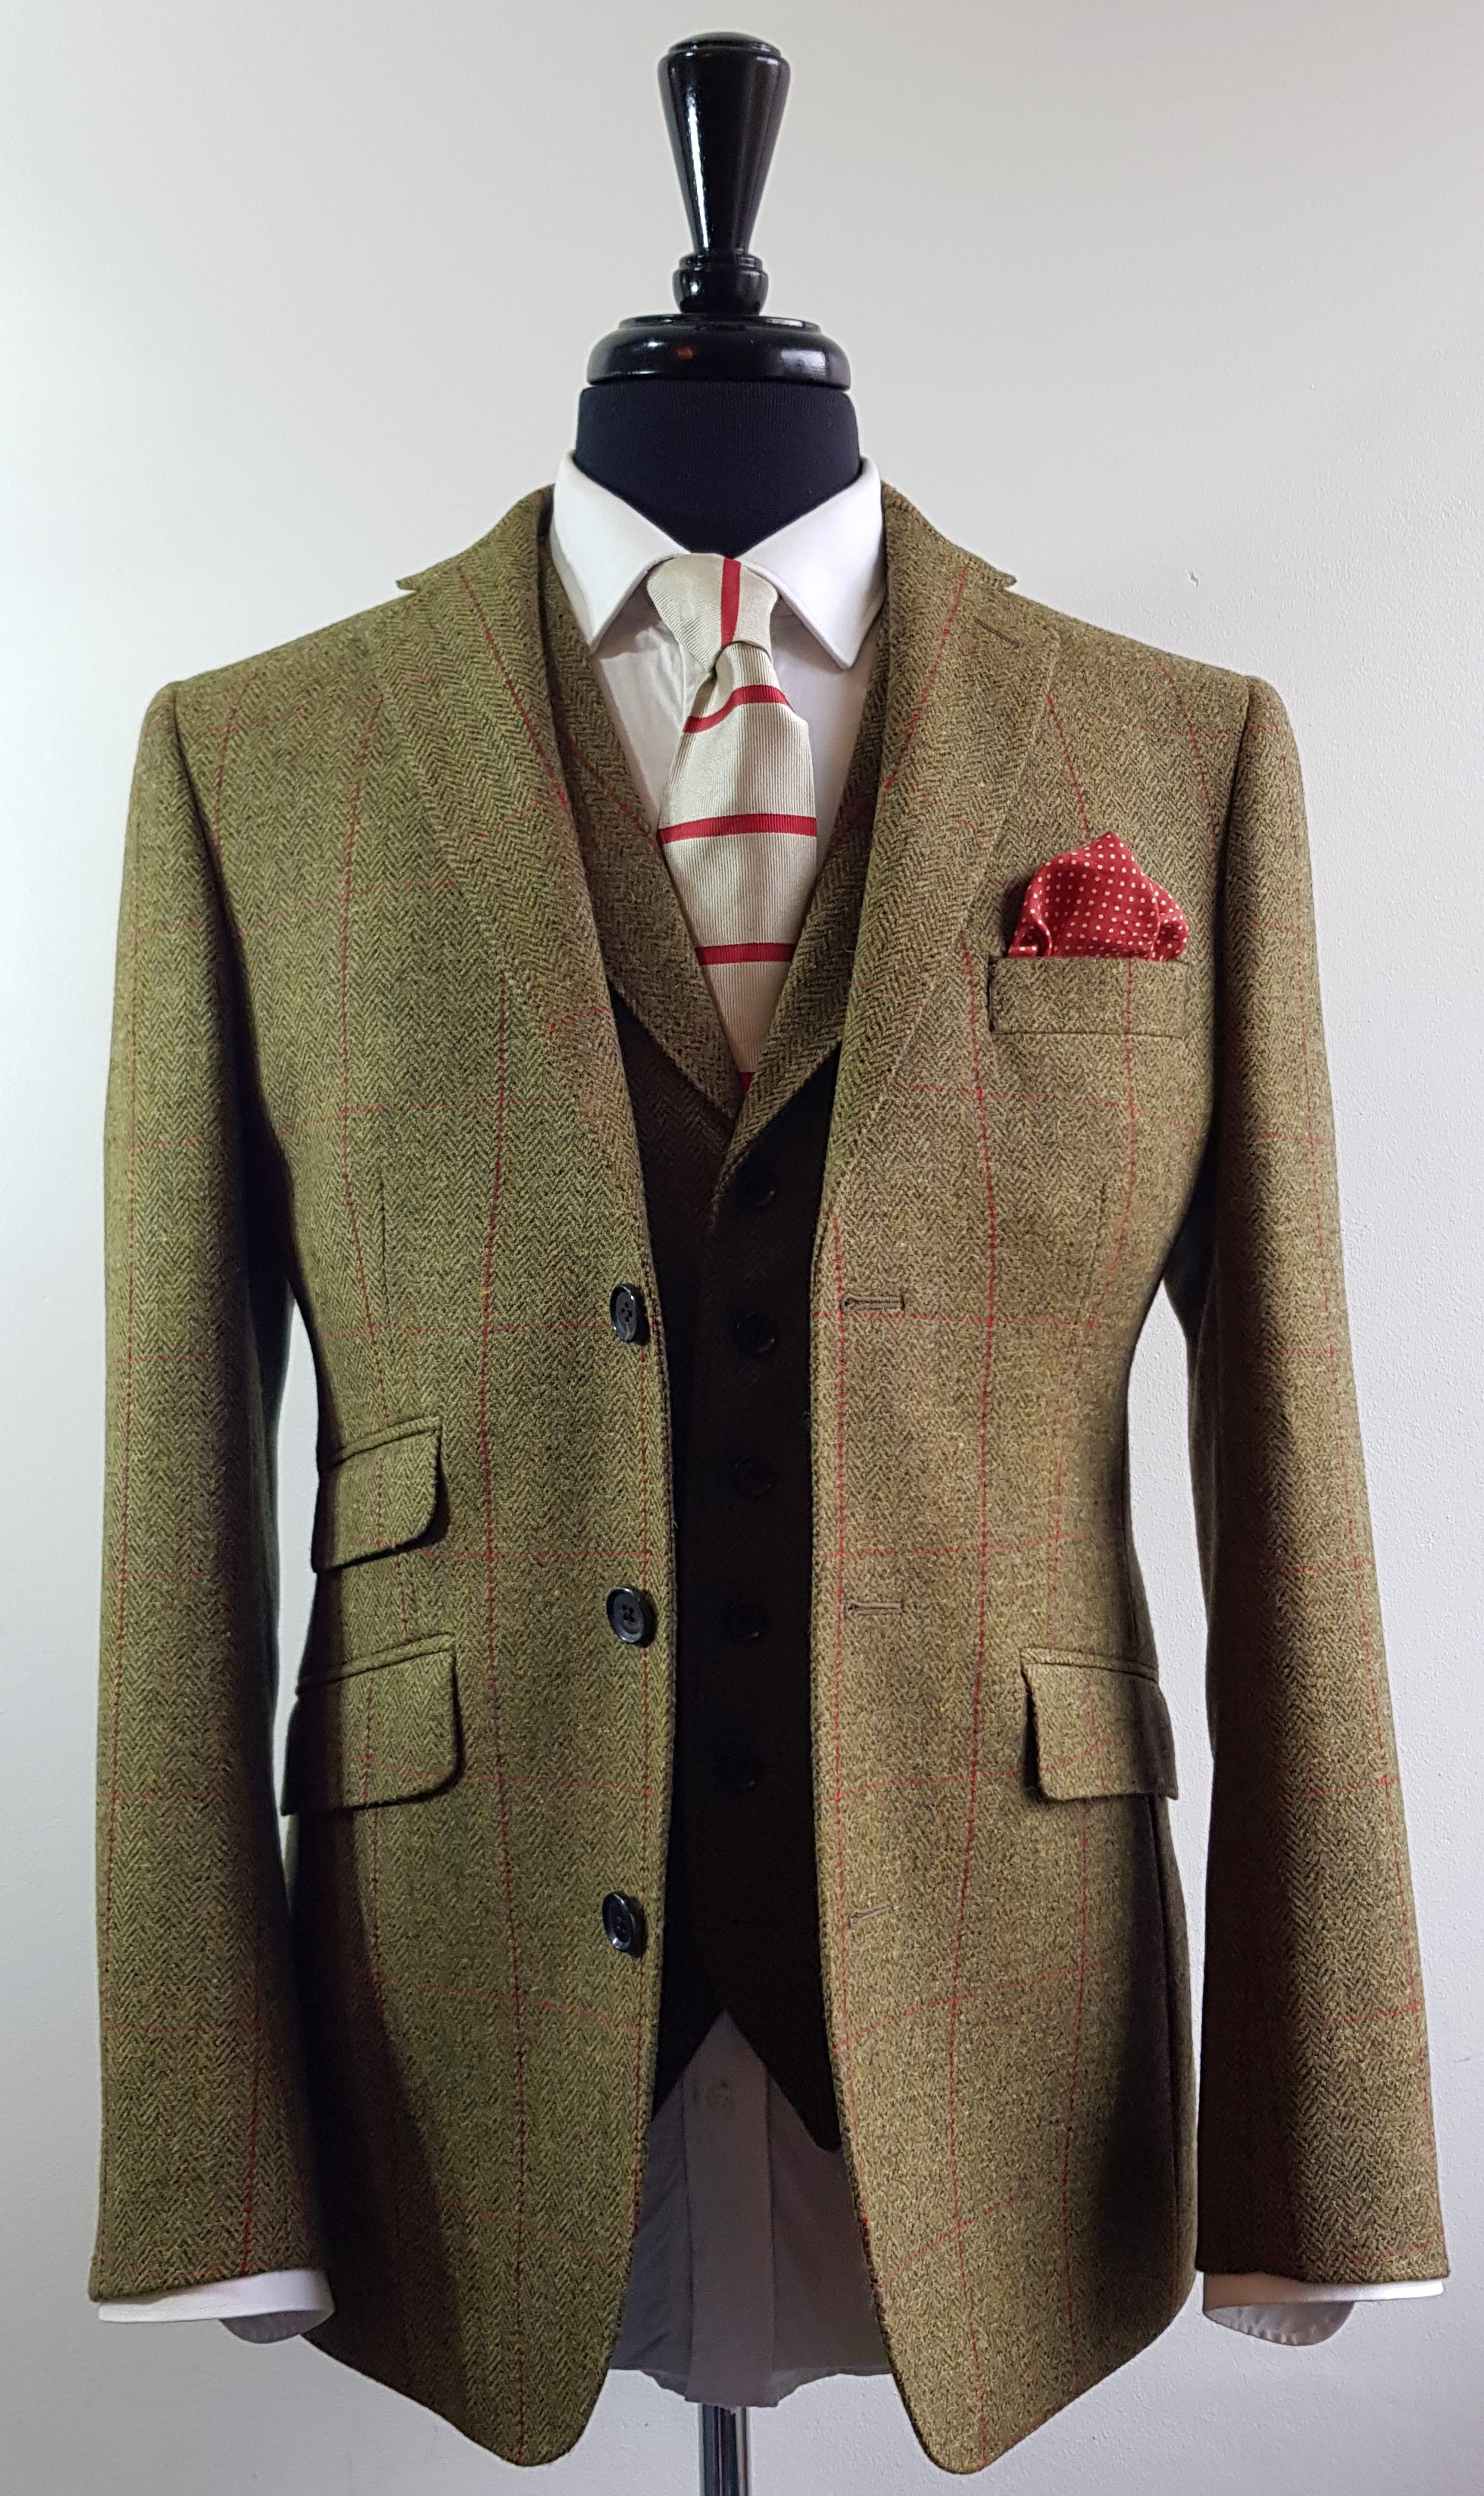 Tweed Jacket and Tweed Waistcoat (5).jpg